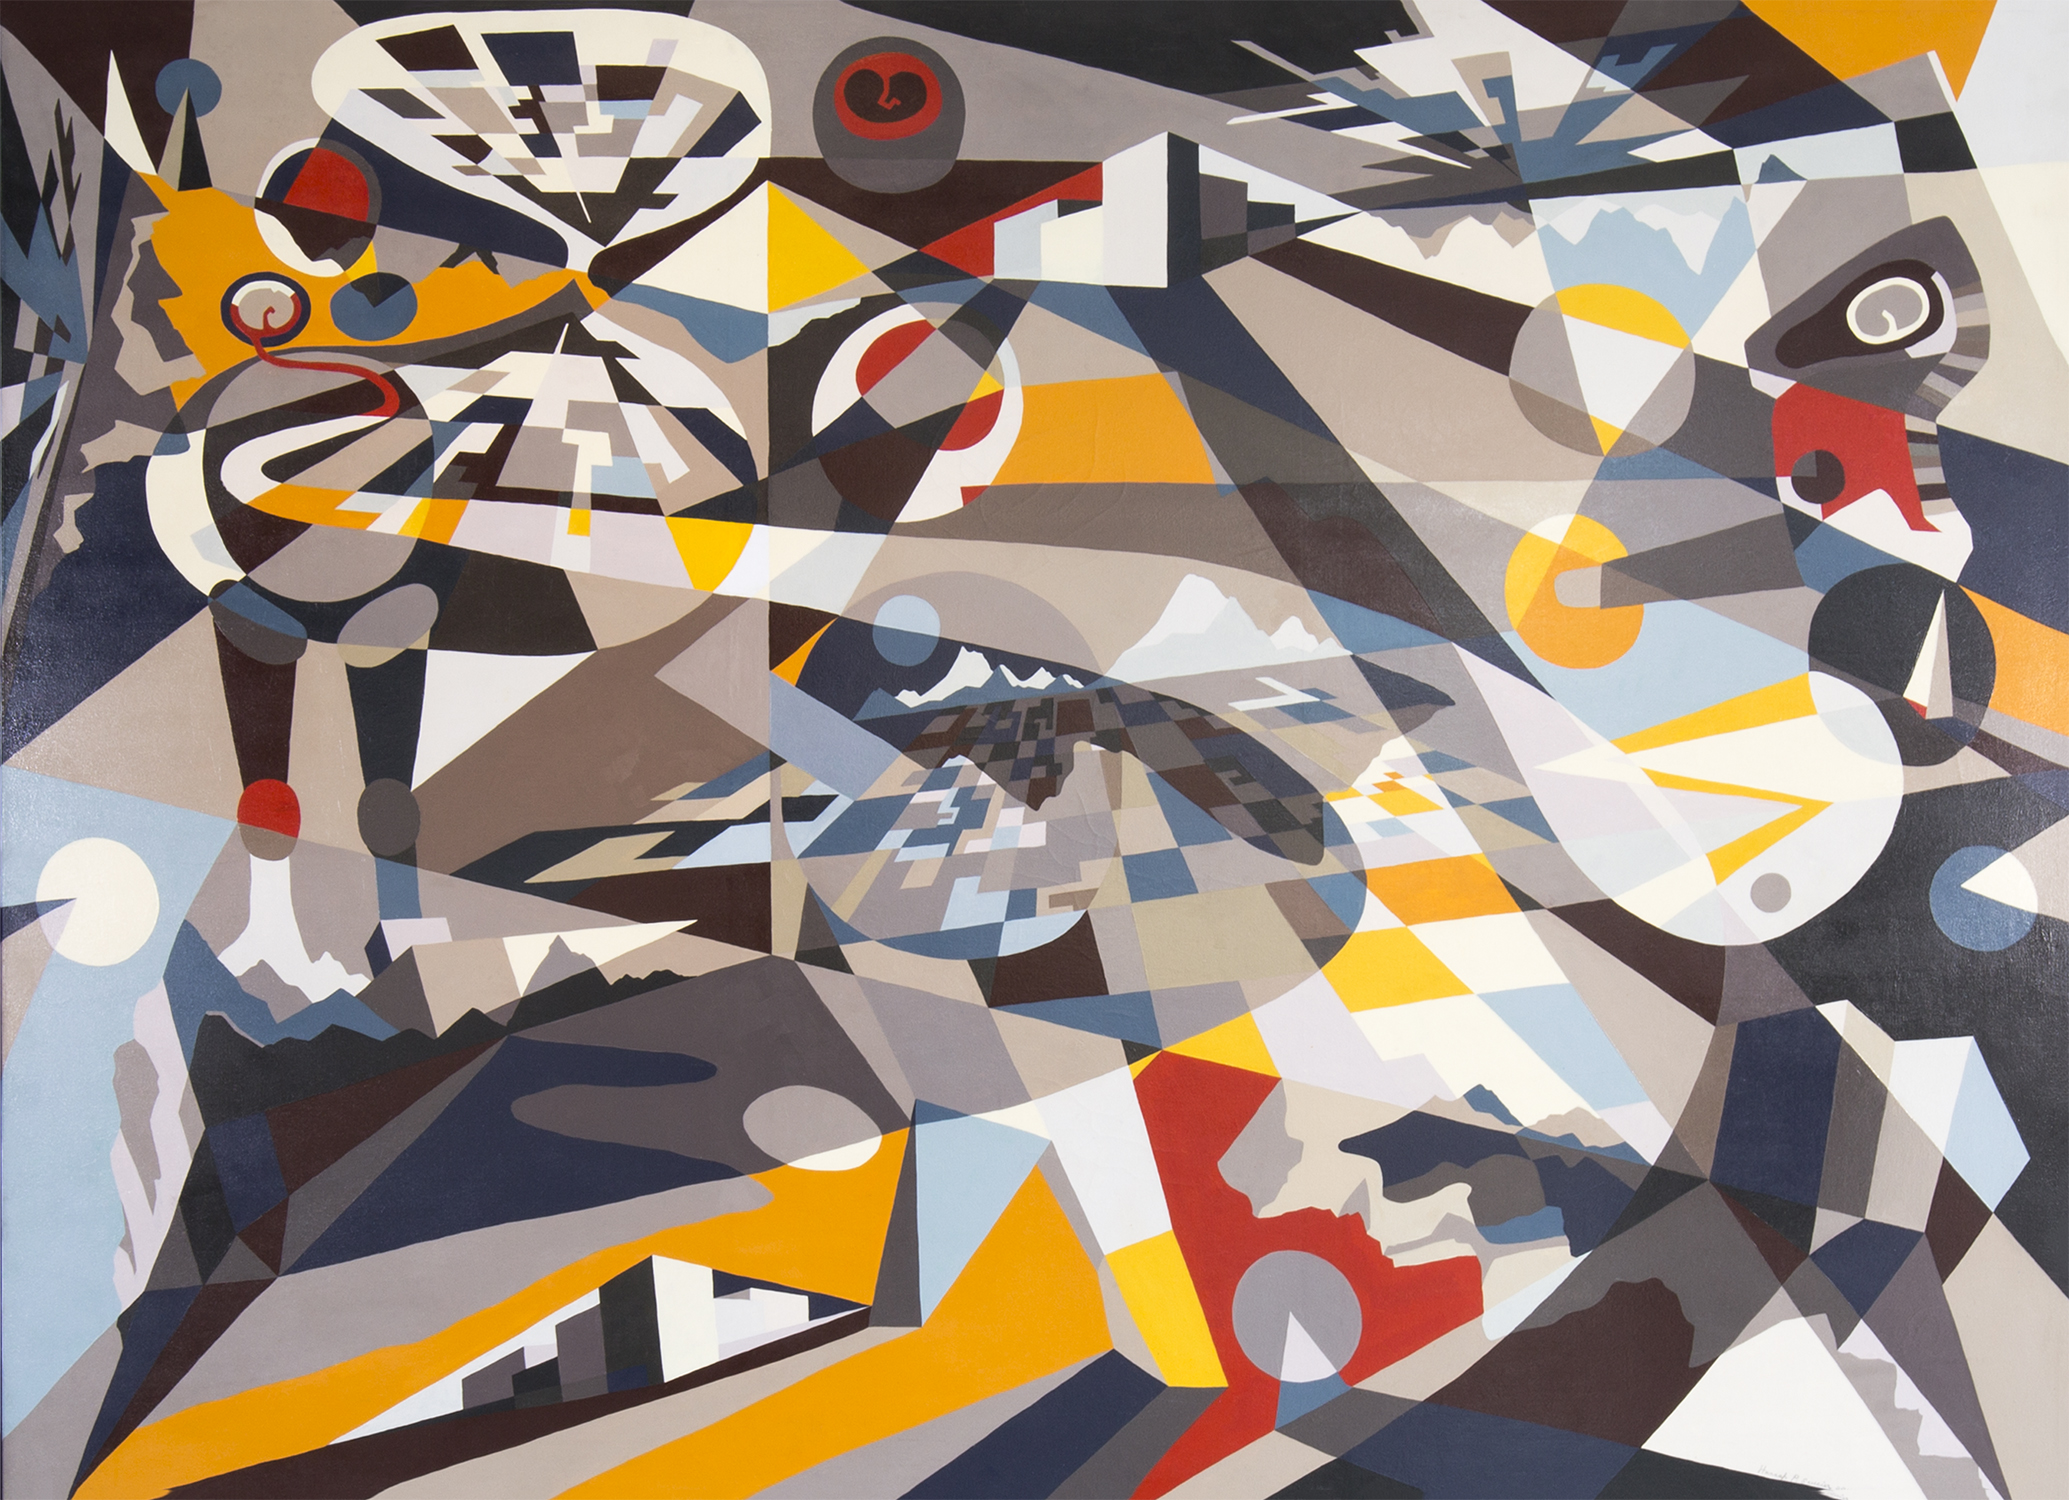 Shapeshifting  by Hannah Perry Saucier, 2014. Oil on canvas, framed. Image courtesy of the gallery.